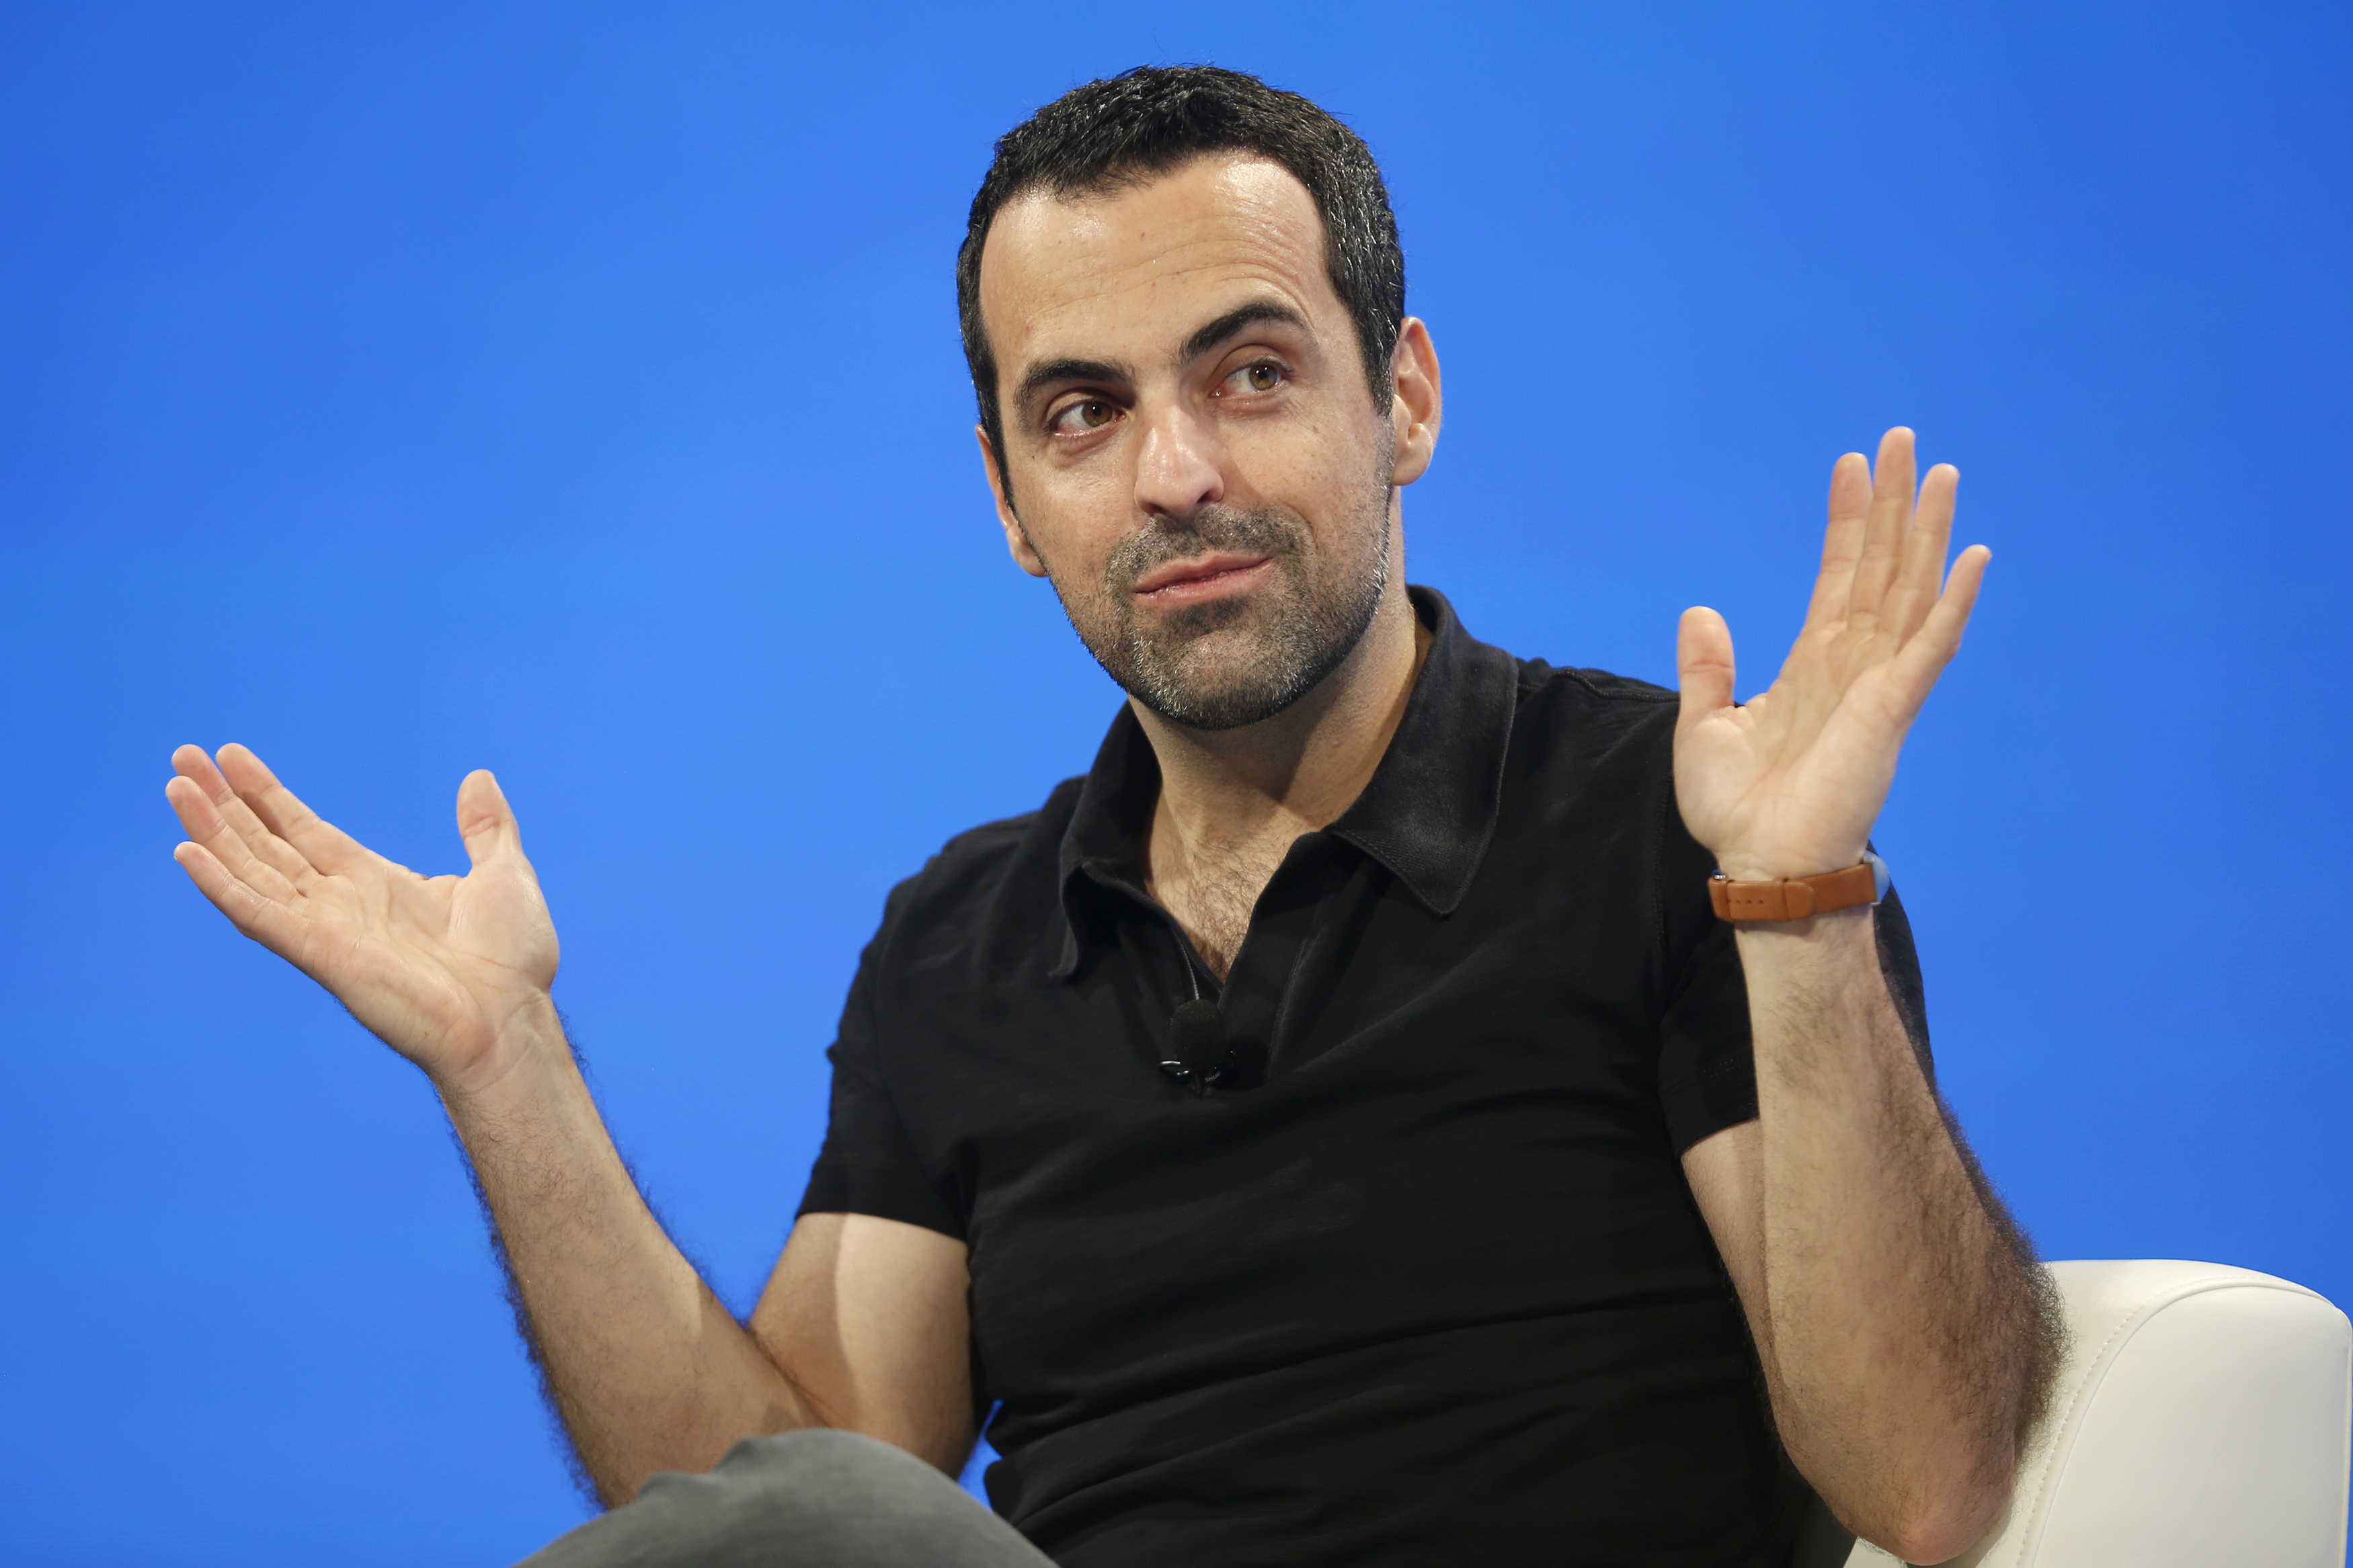 Xiaomi Vice President Hugo Barra speaks at the WSJD Live conference in Laguna Beach, California October 28, 2014.  REUTERS/Lucy Nicholson (UNITED STATES - Tags: BUSINESS) - RTR4BXKW